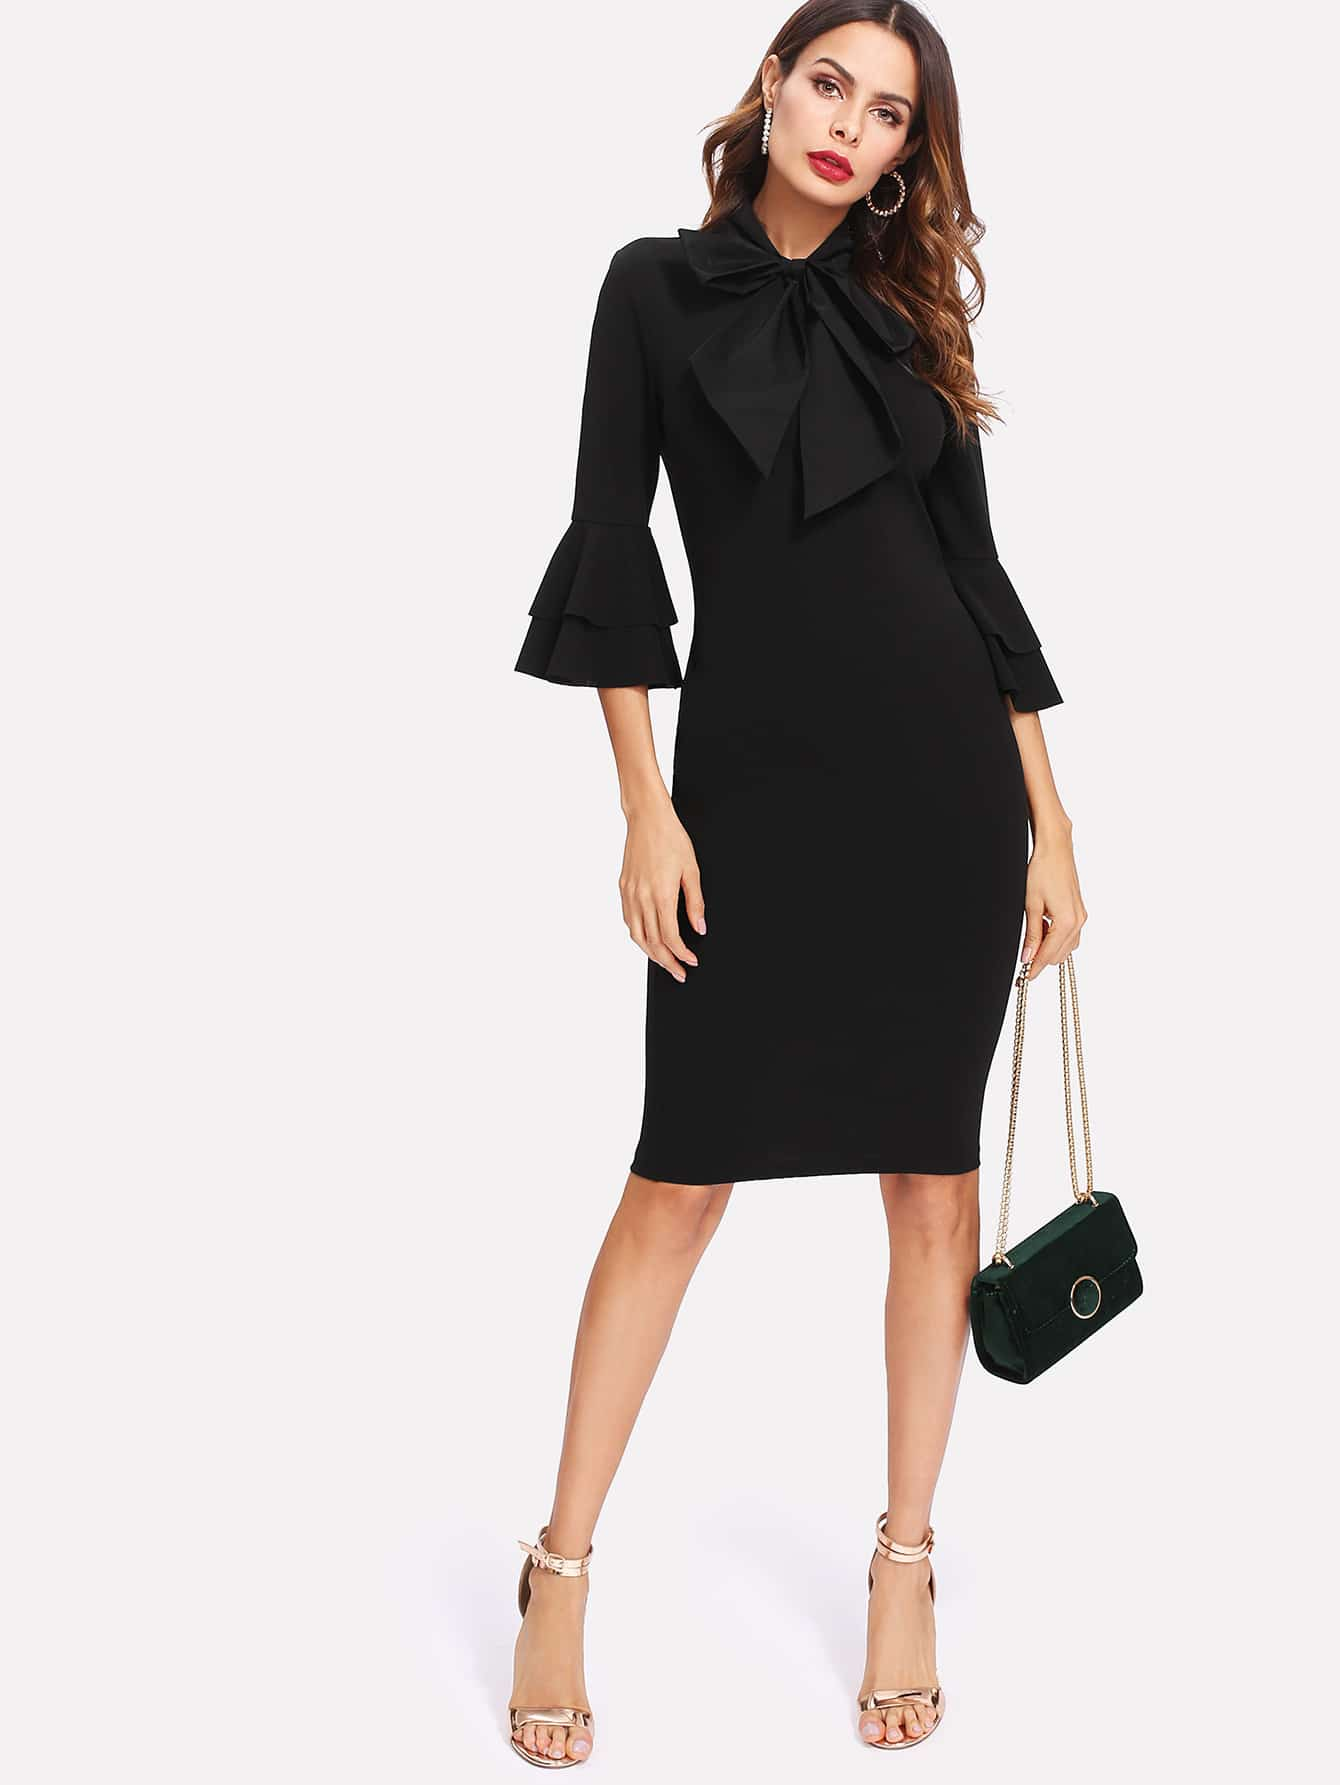 Flounce Sleeve Slit Back Tied Neck Fitted Dress one shoulder slit back fitted dress